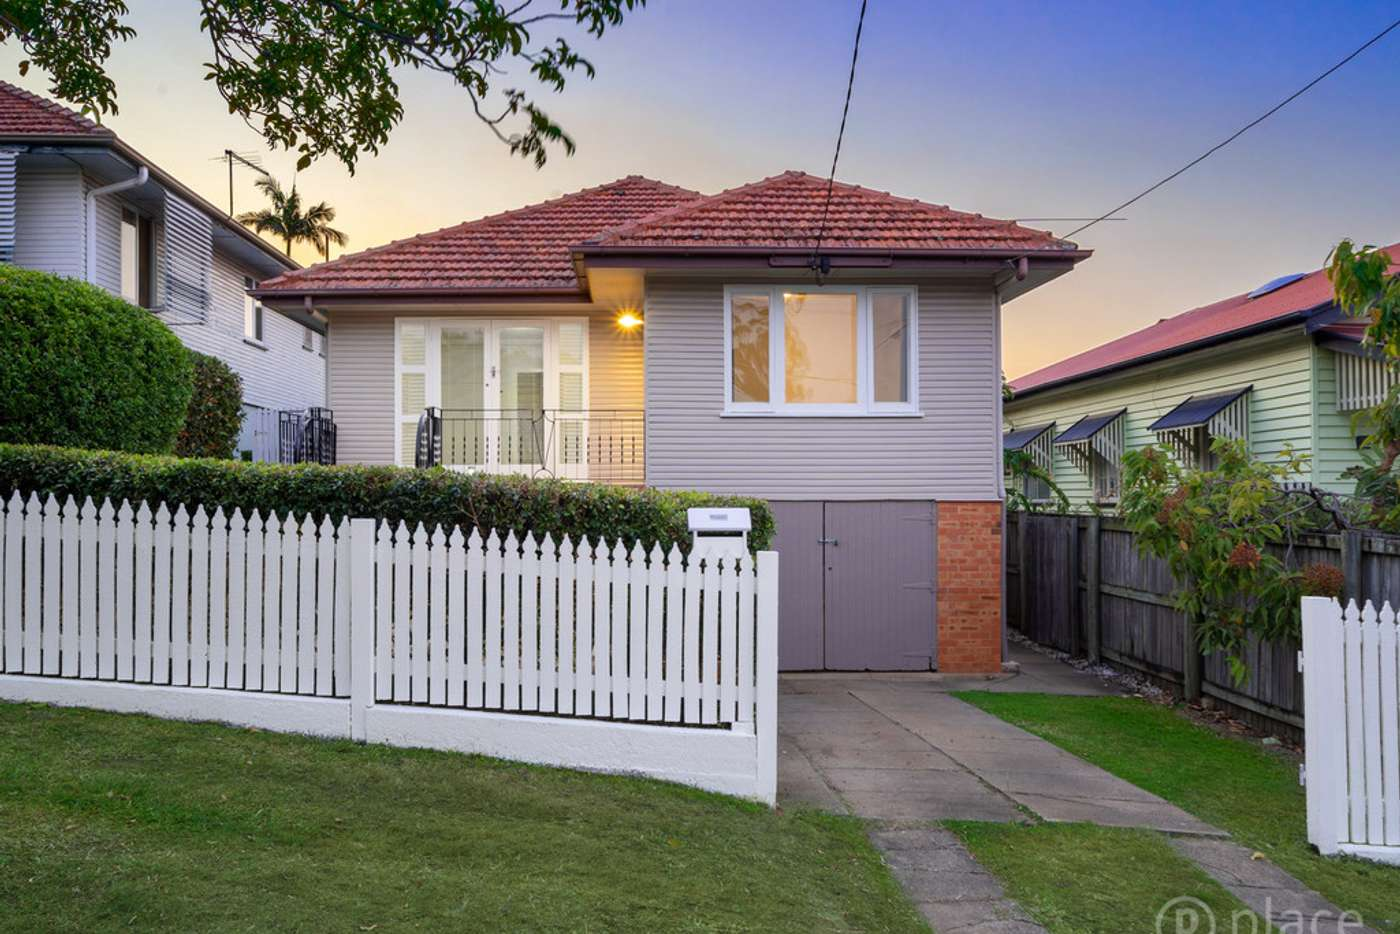 Main view of Homely house listing, 87 Peach Street, Greenslopes QLD 4120